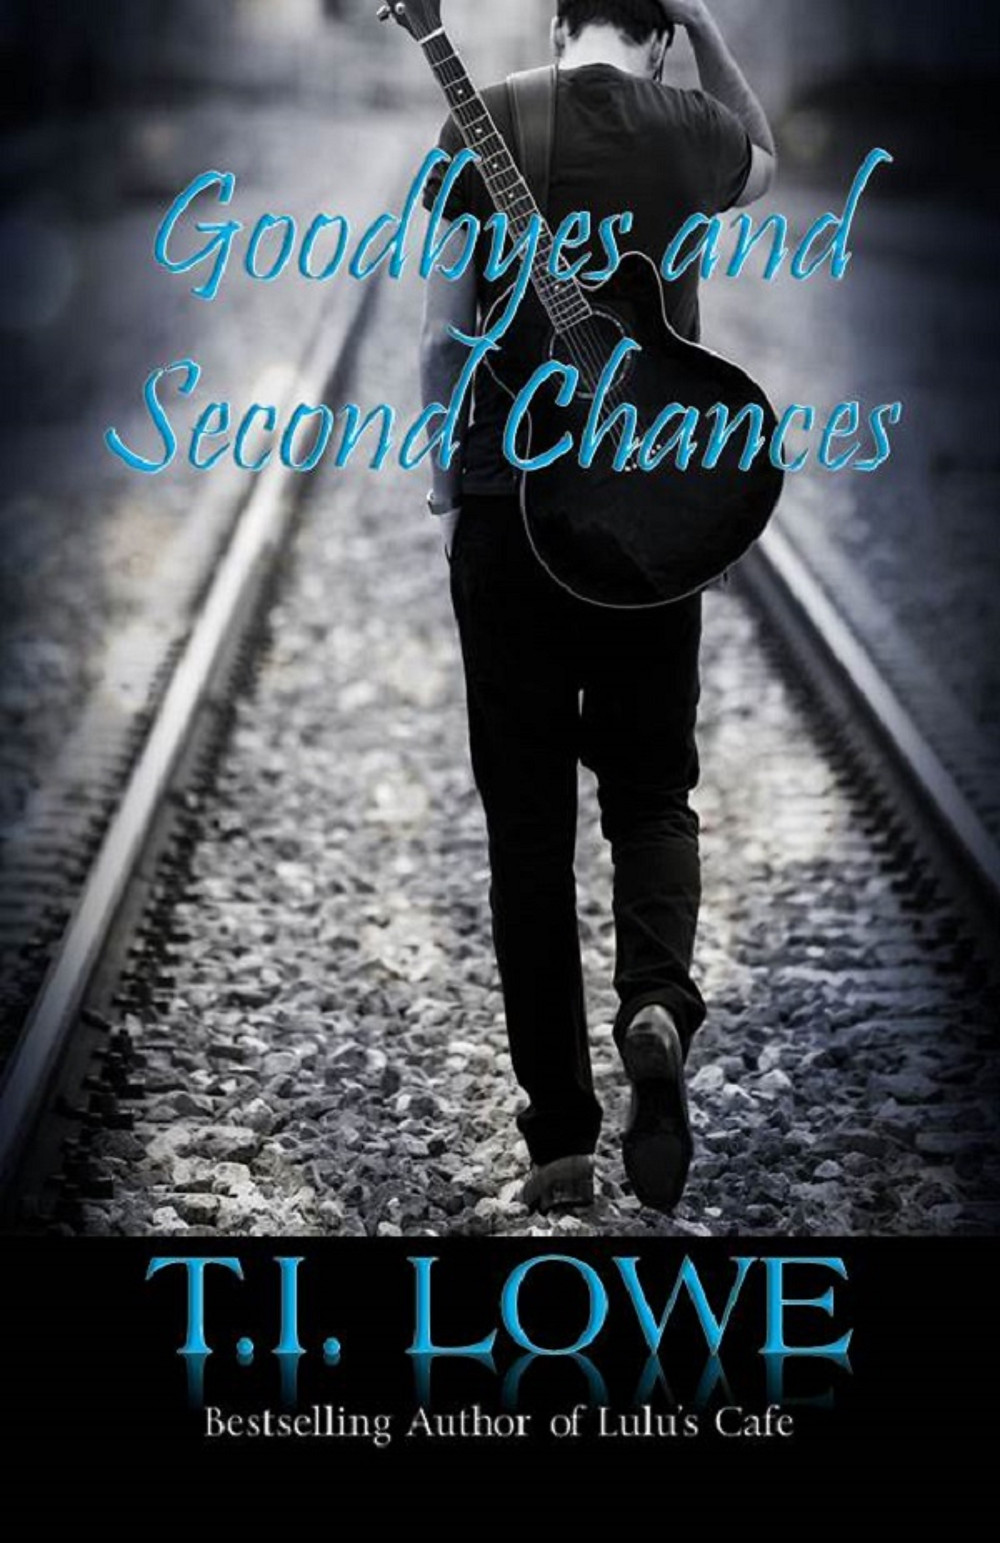 Goodbyes and Second Chances COVER.jpg